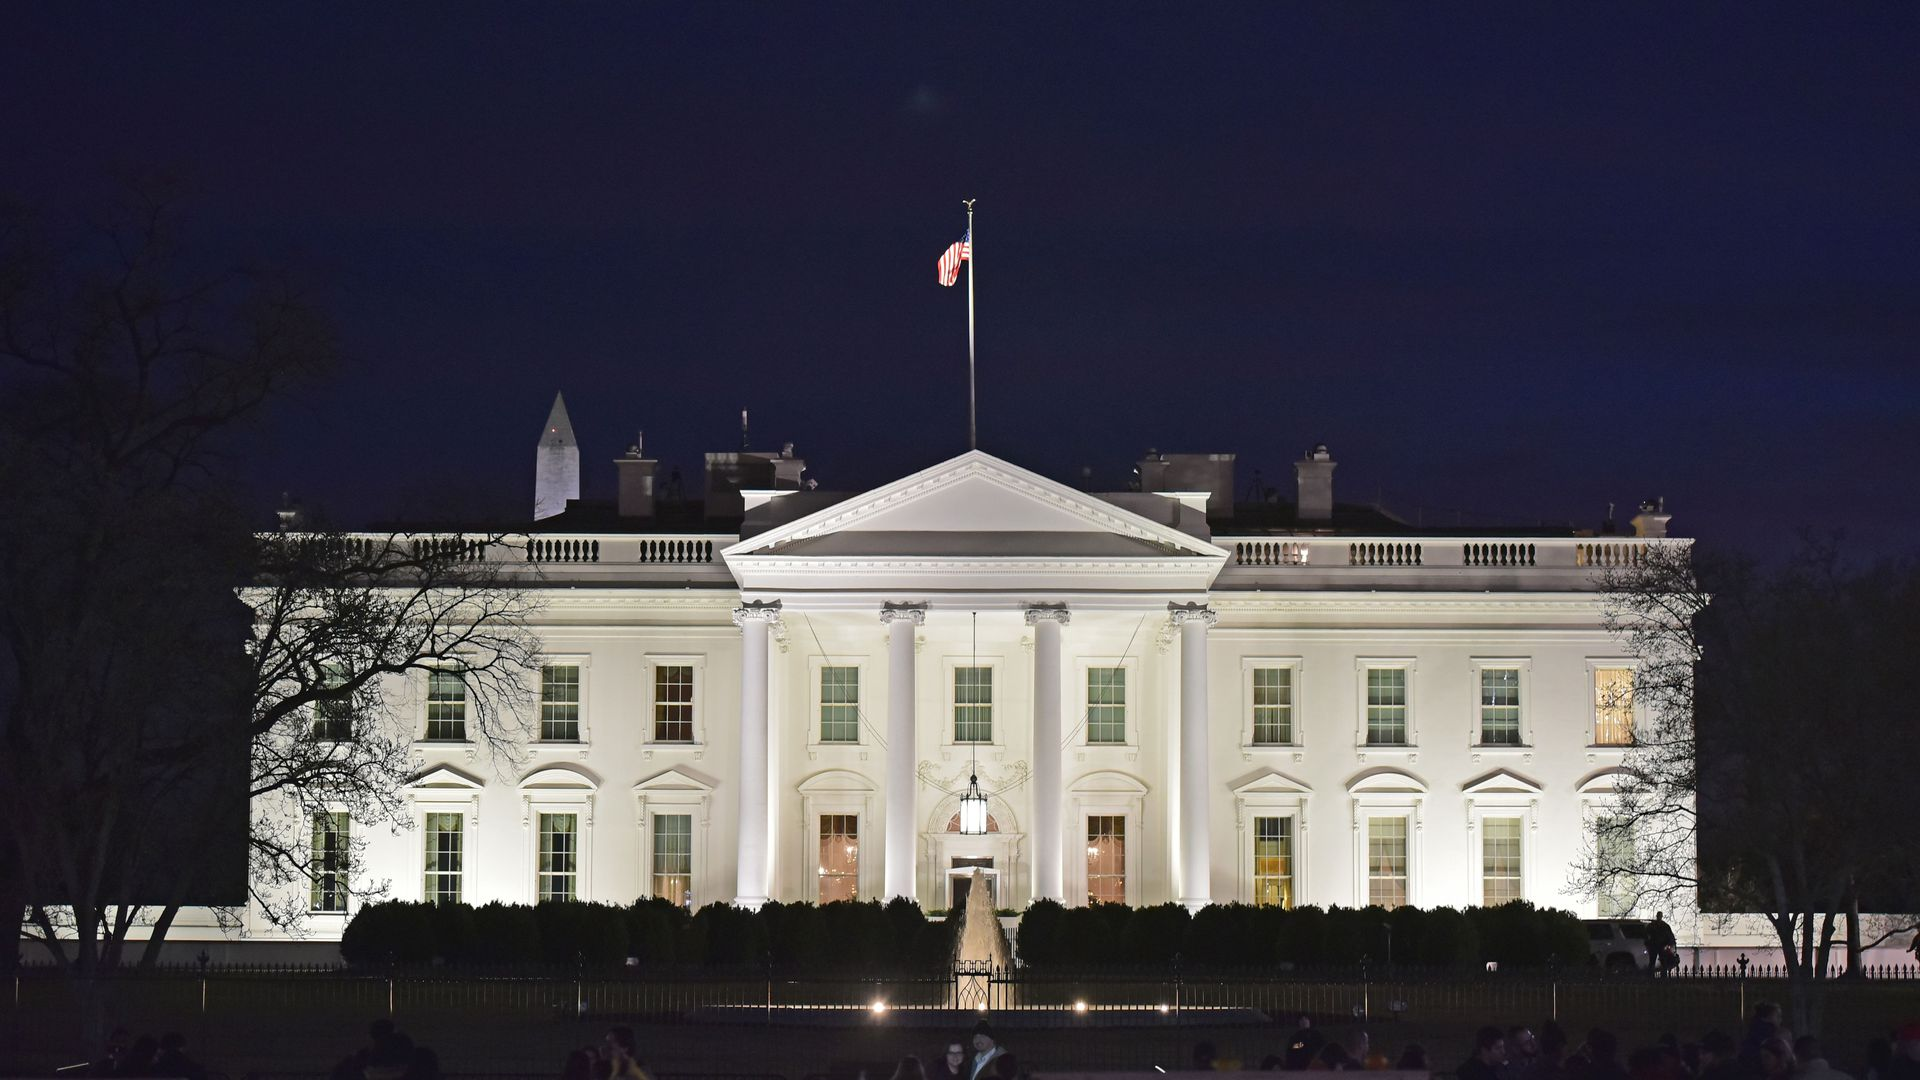 The White House at nighttime